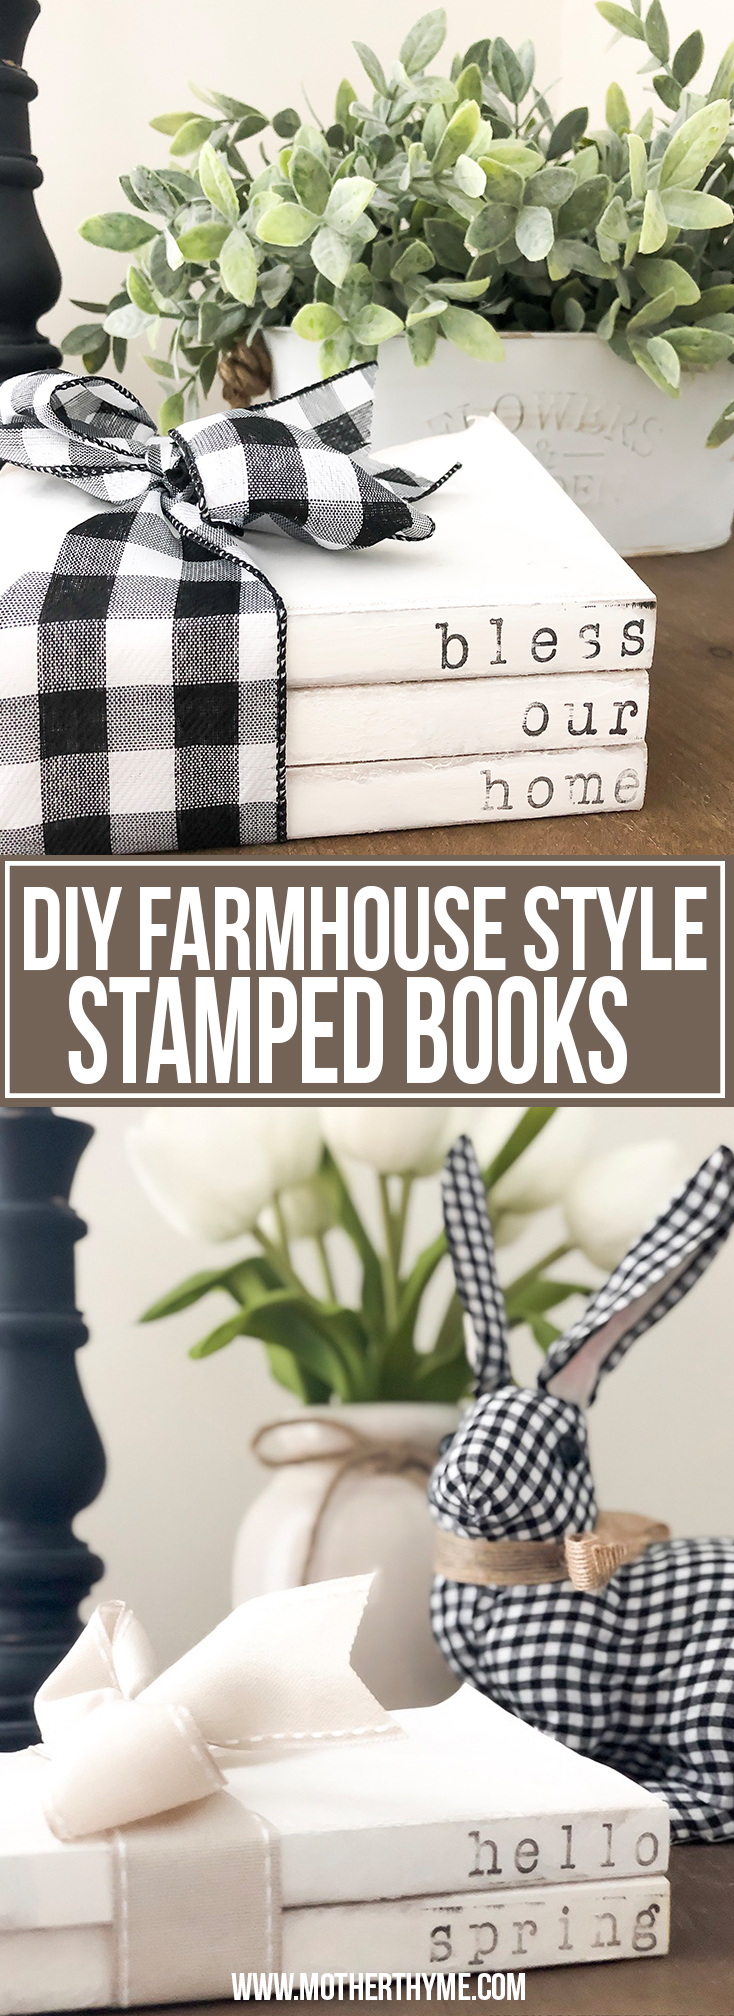 DIY FARMHOUSE STYLED STAMPED BOOKS